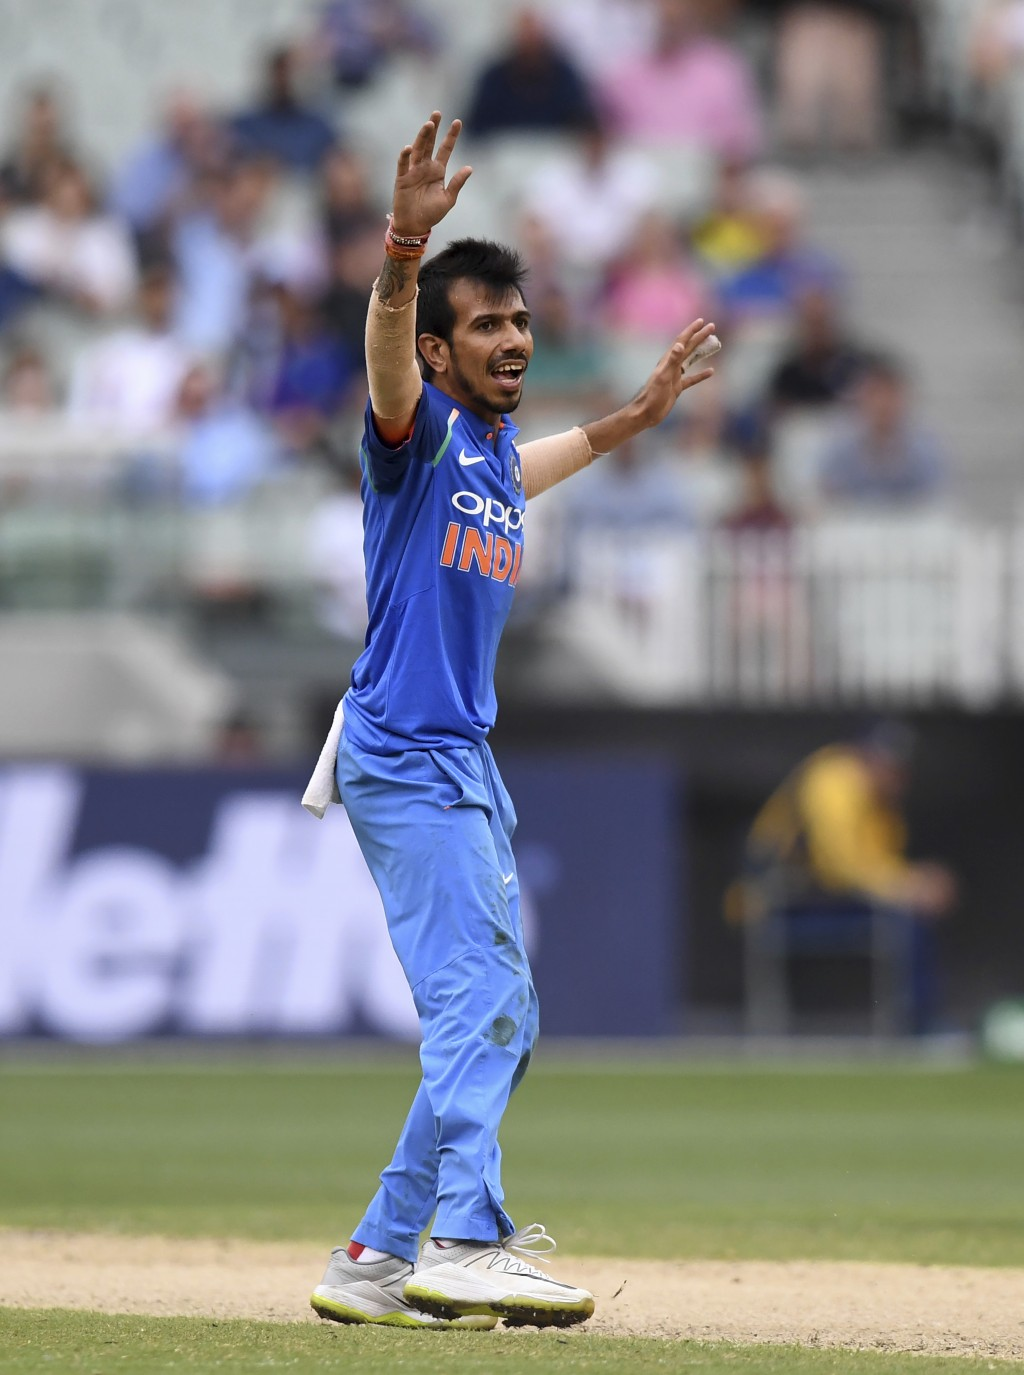 India's Yuzvendra Chahal appeals during their one day international cricket match against Australia in Melbourne, Australia, Friday, Jan. 18, 2019. (A